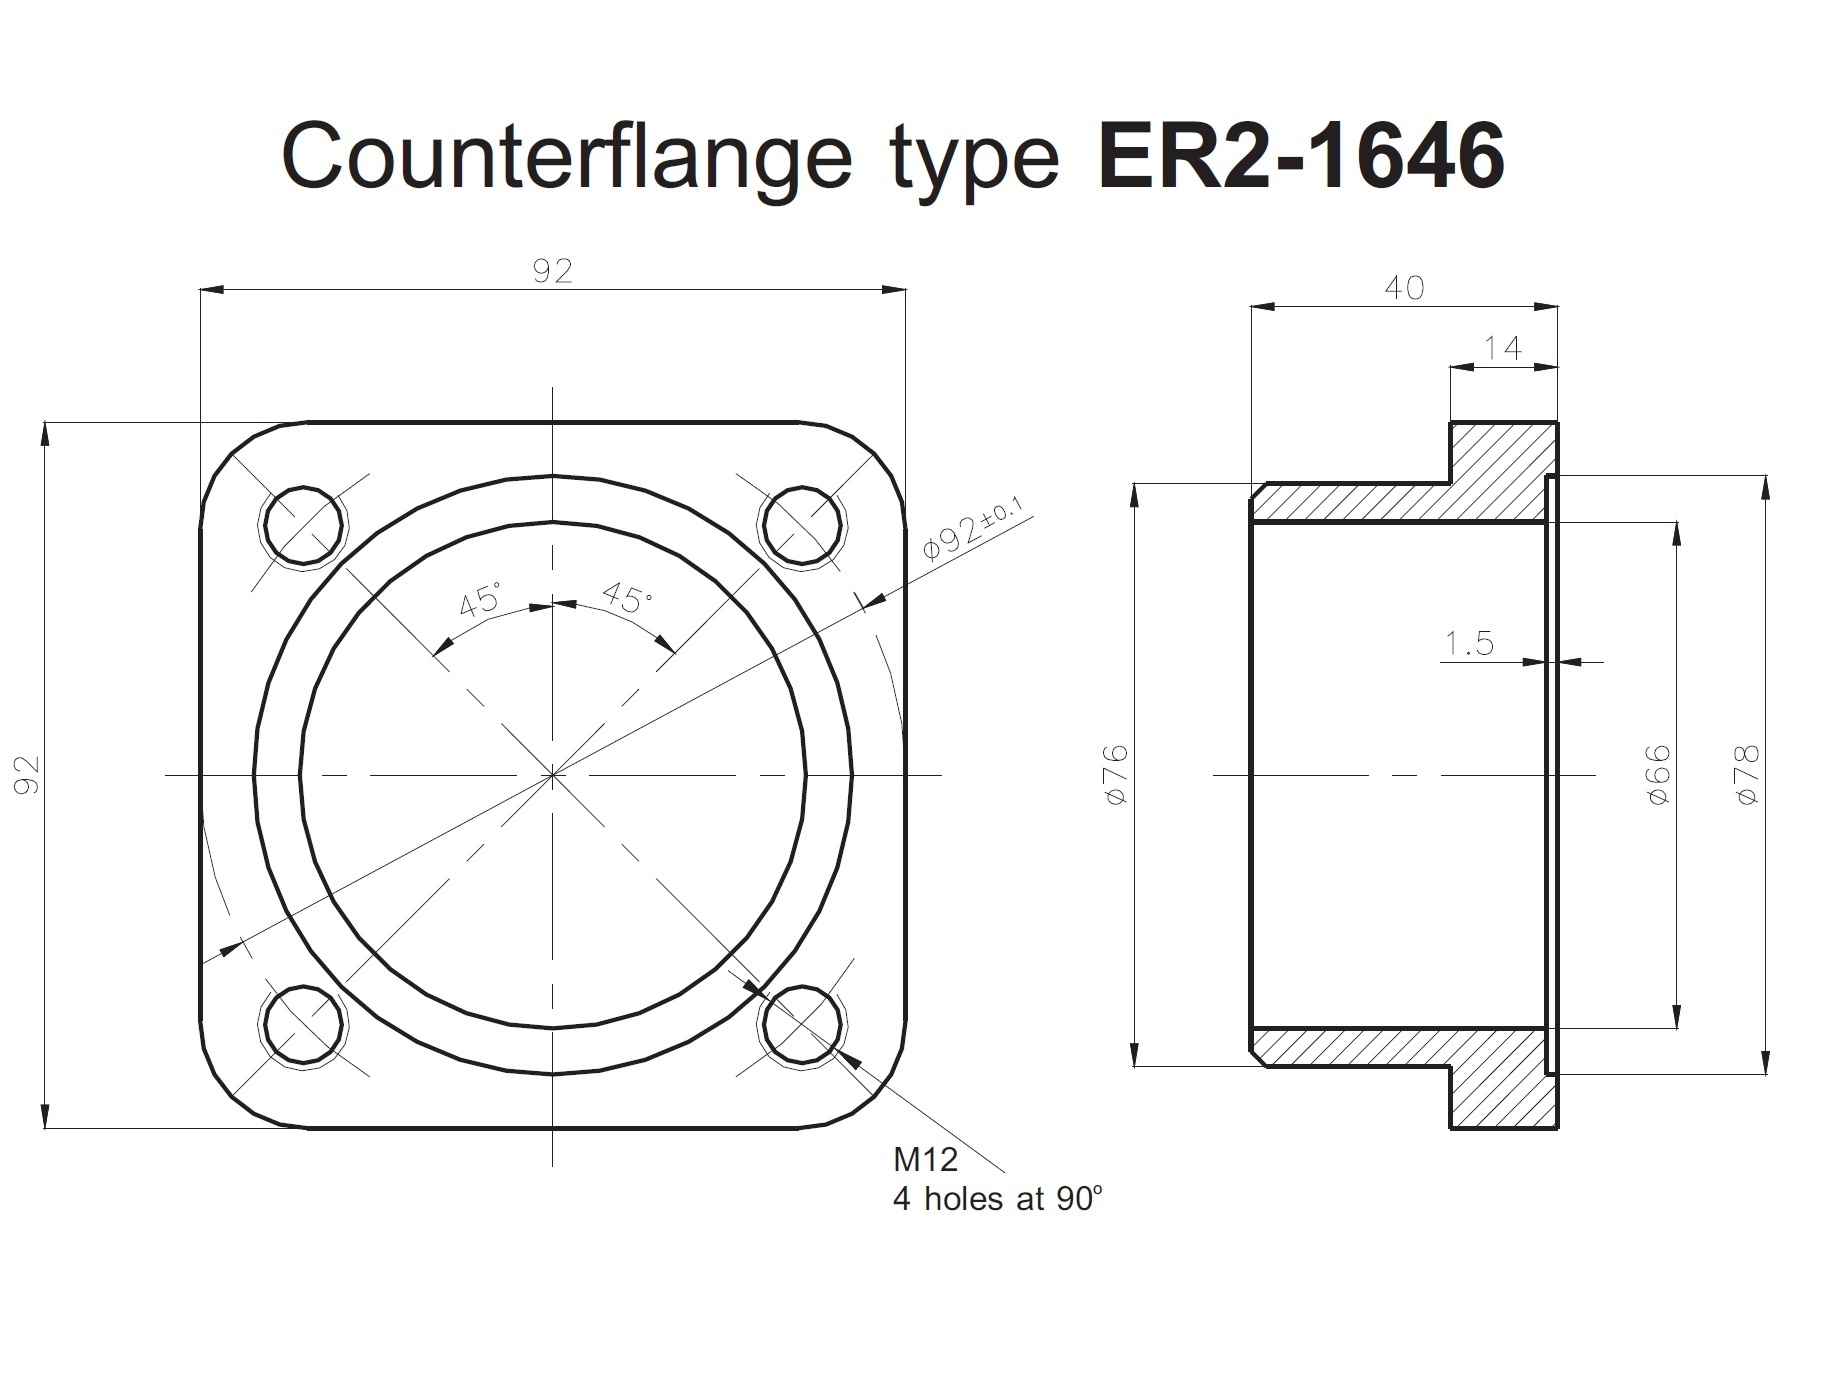 Square counter flange 92x92 for ERH Series